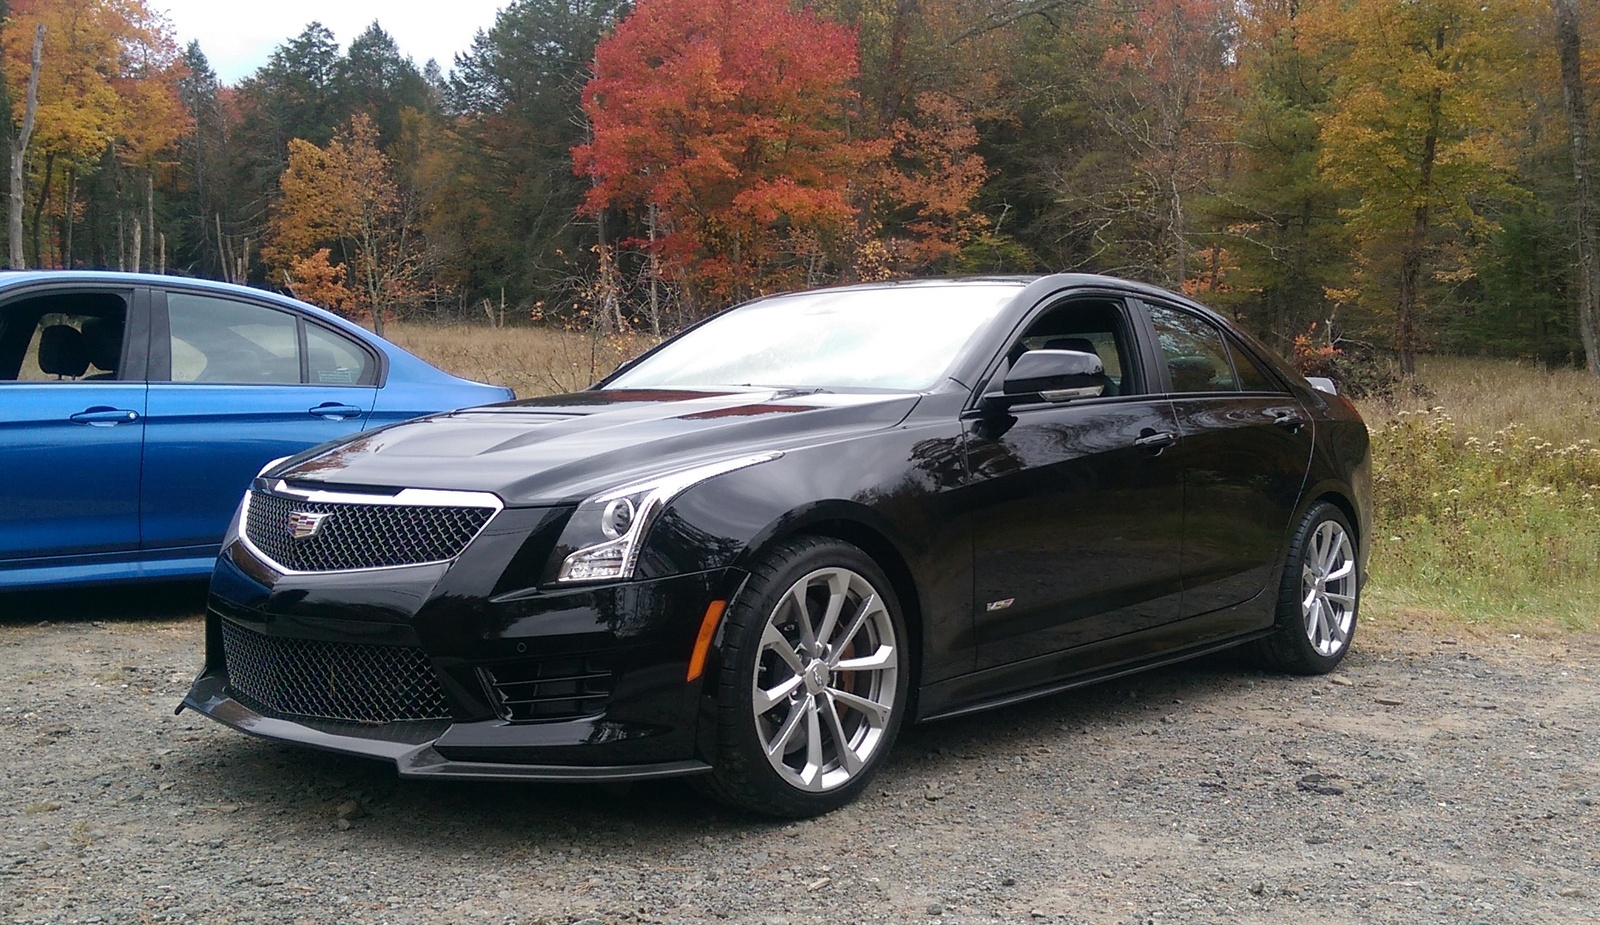 Cadillac Cts Wiring Diagrams Get Free Image About Wiring Diagram